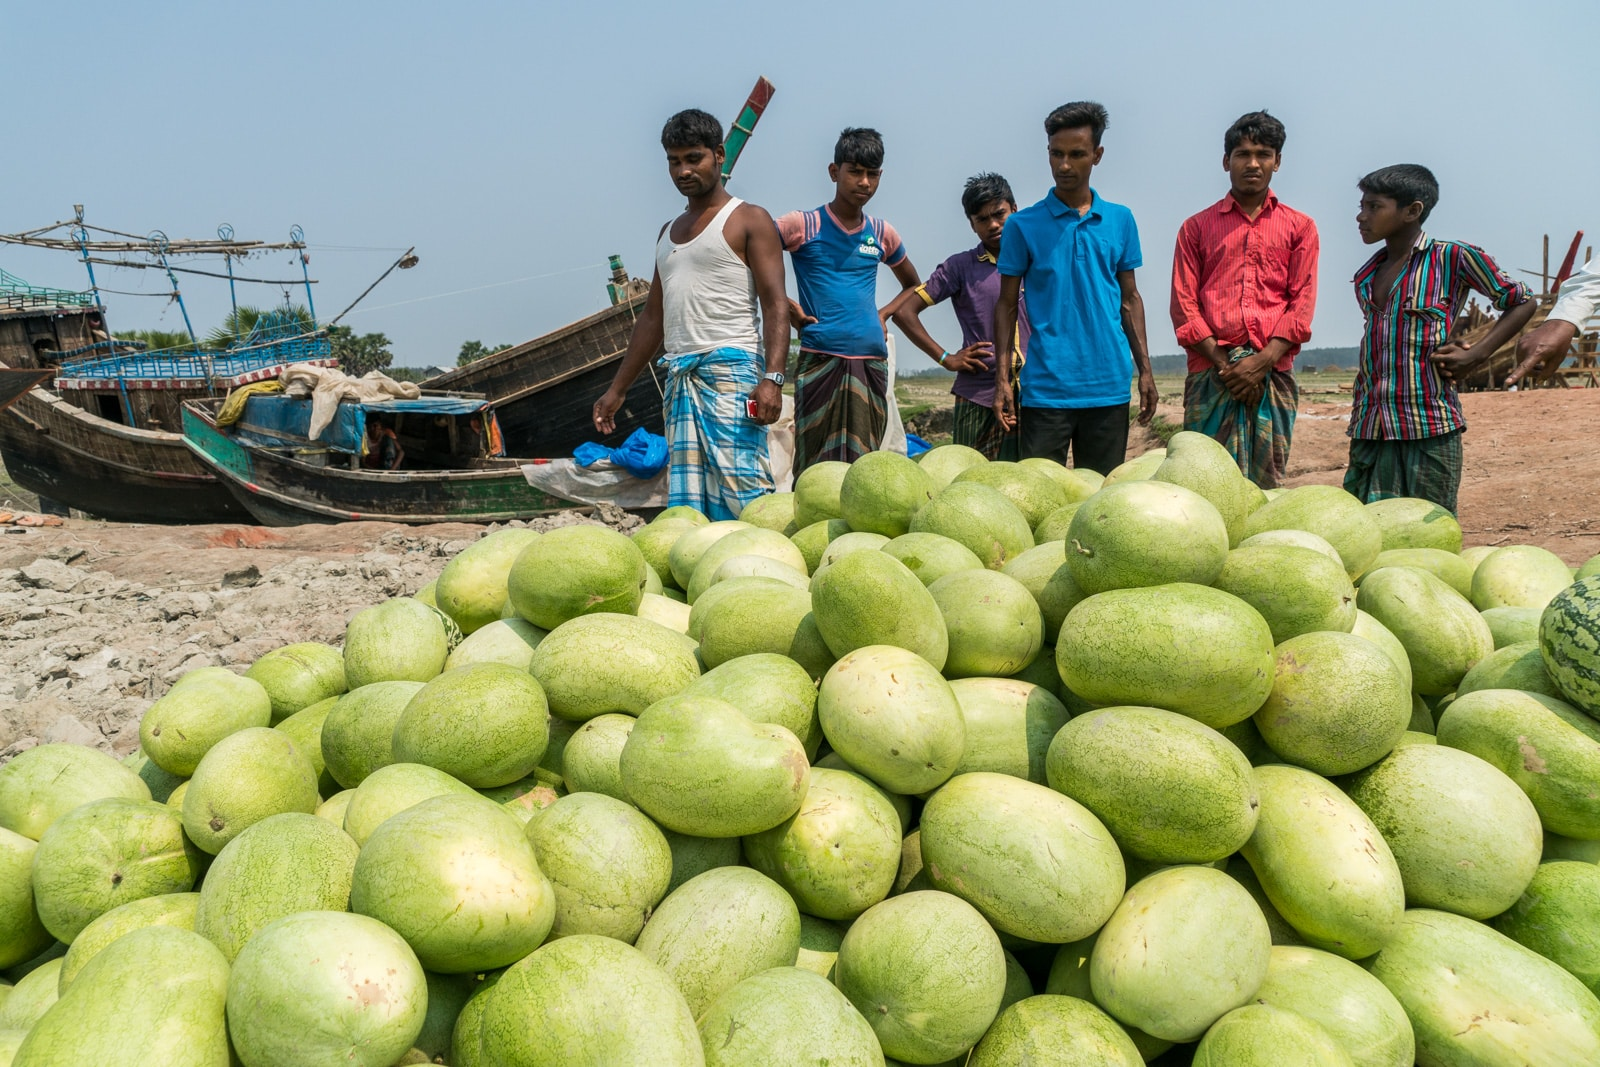 Backpacking in Bangladesh travel guide - Watermelon pile on Hatiya - Lost With Purpose travel blog